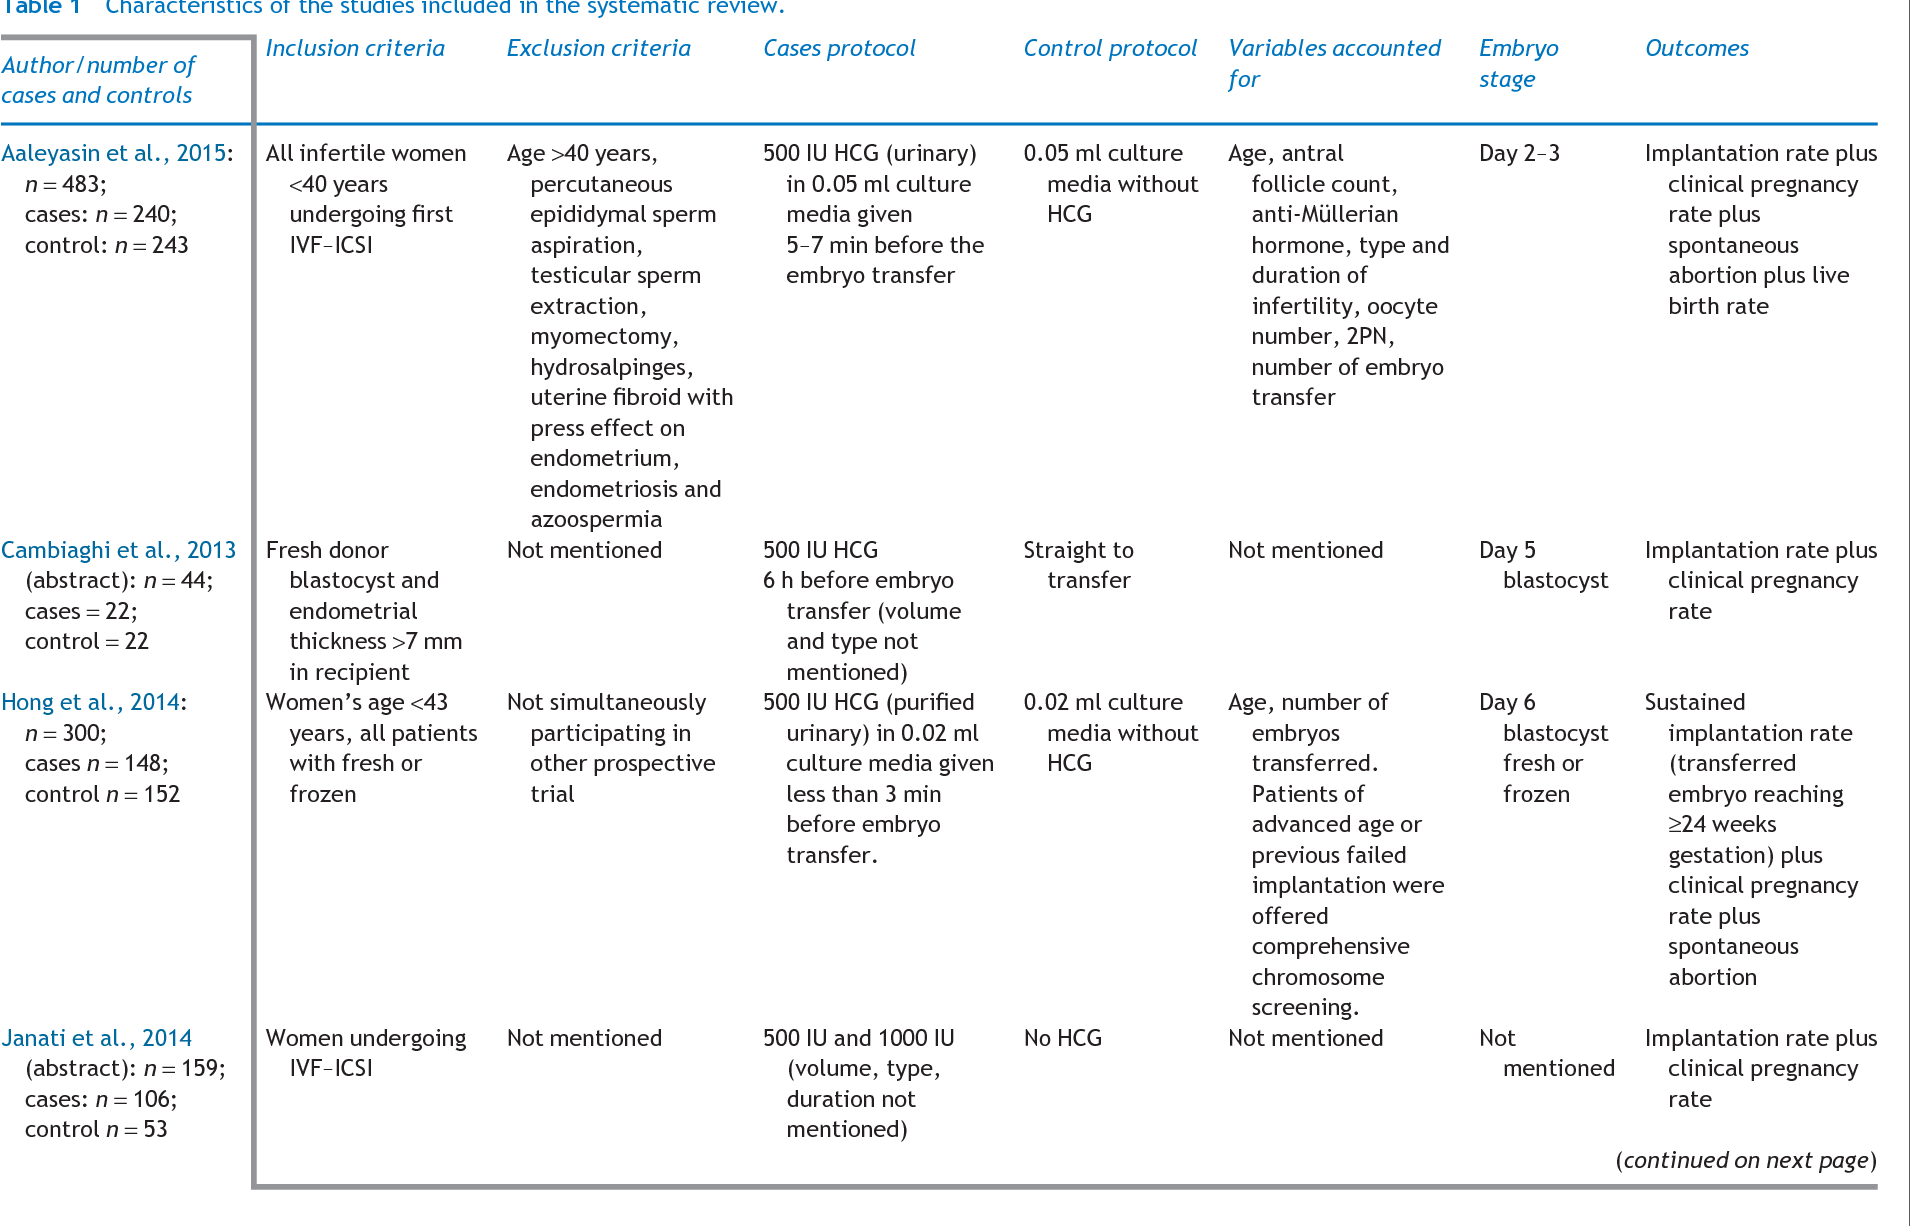 Table 1 from The effect of intrauterine HCG injection on IVF